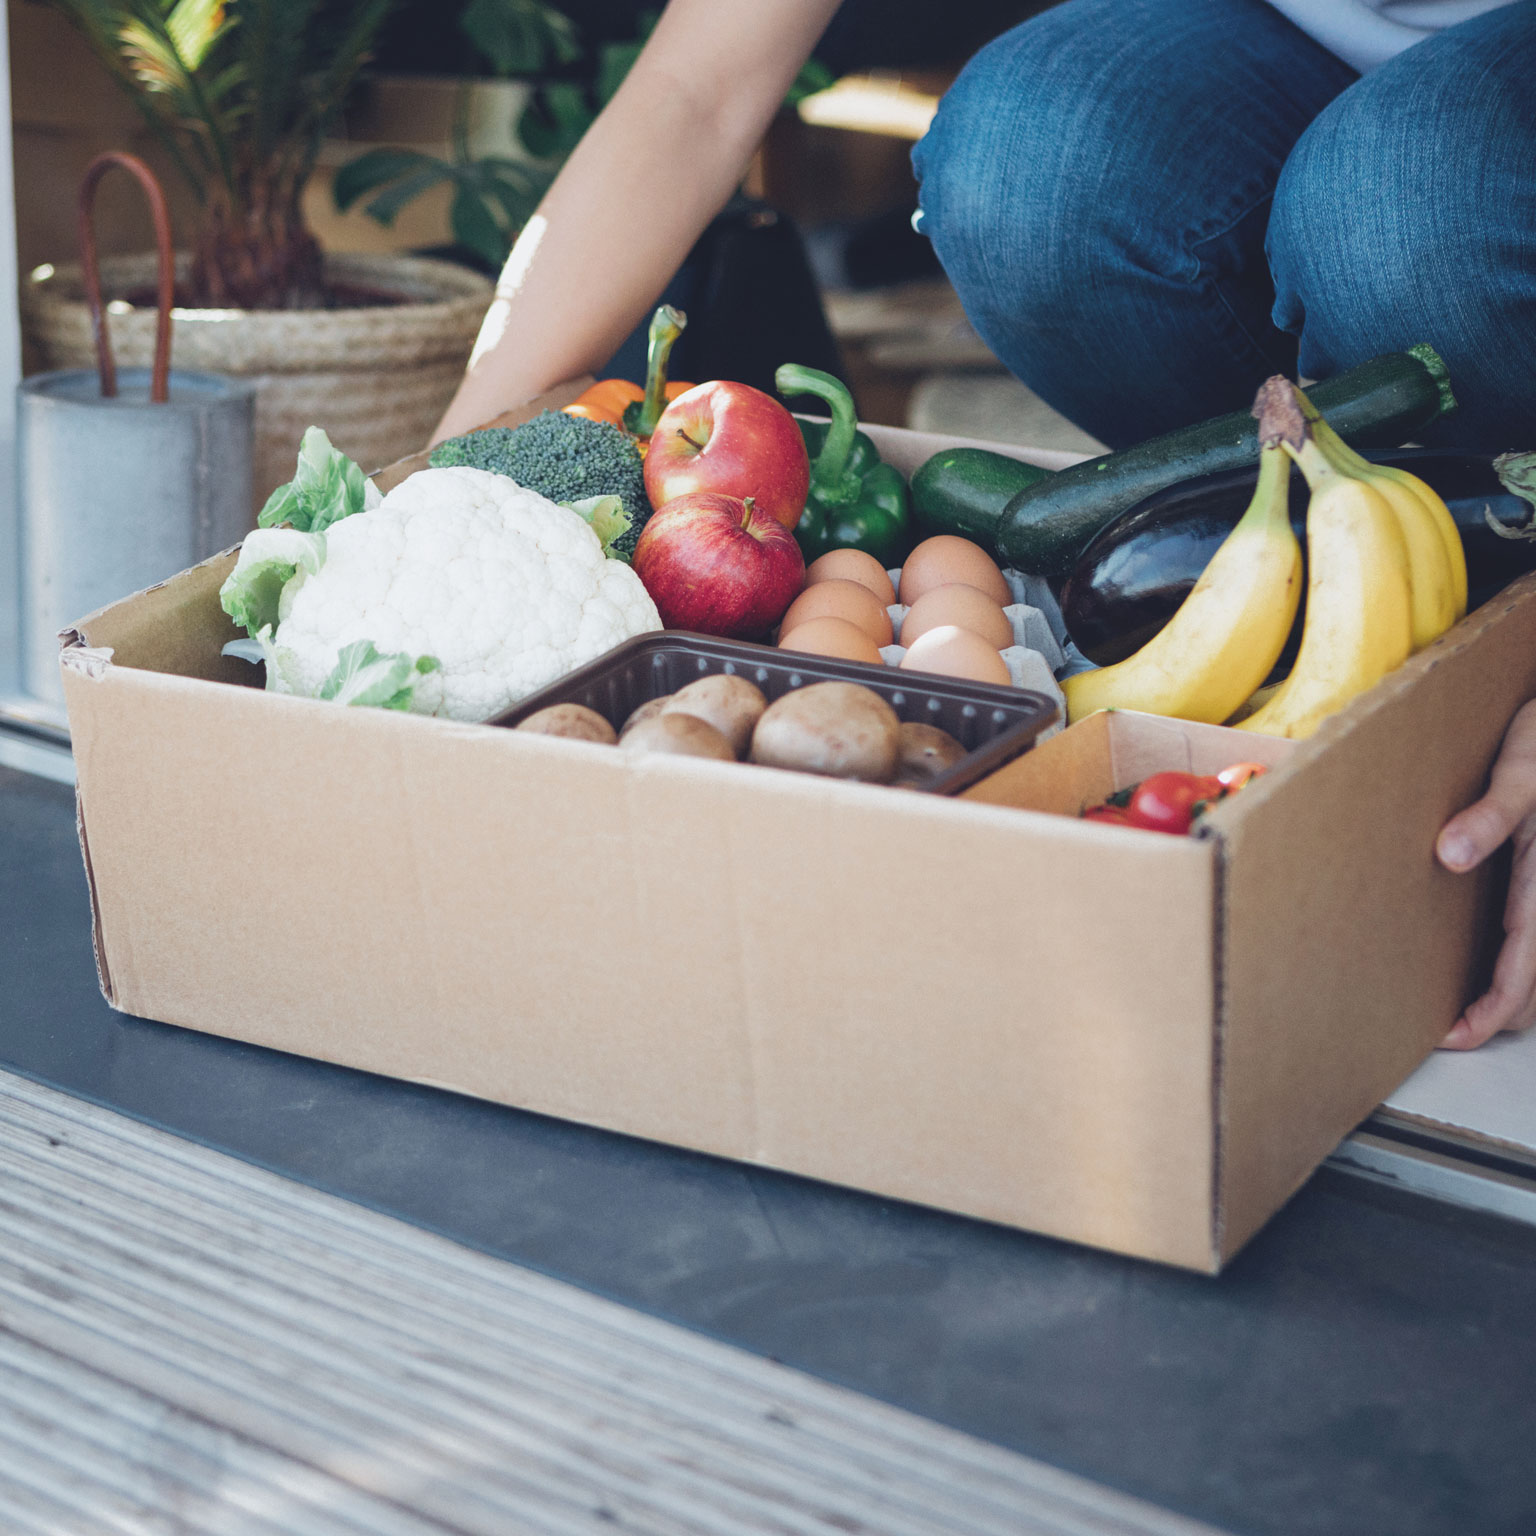 e-commerce-is-shifting-how-european-grocery-retailers-seek-profitable-growth